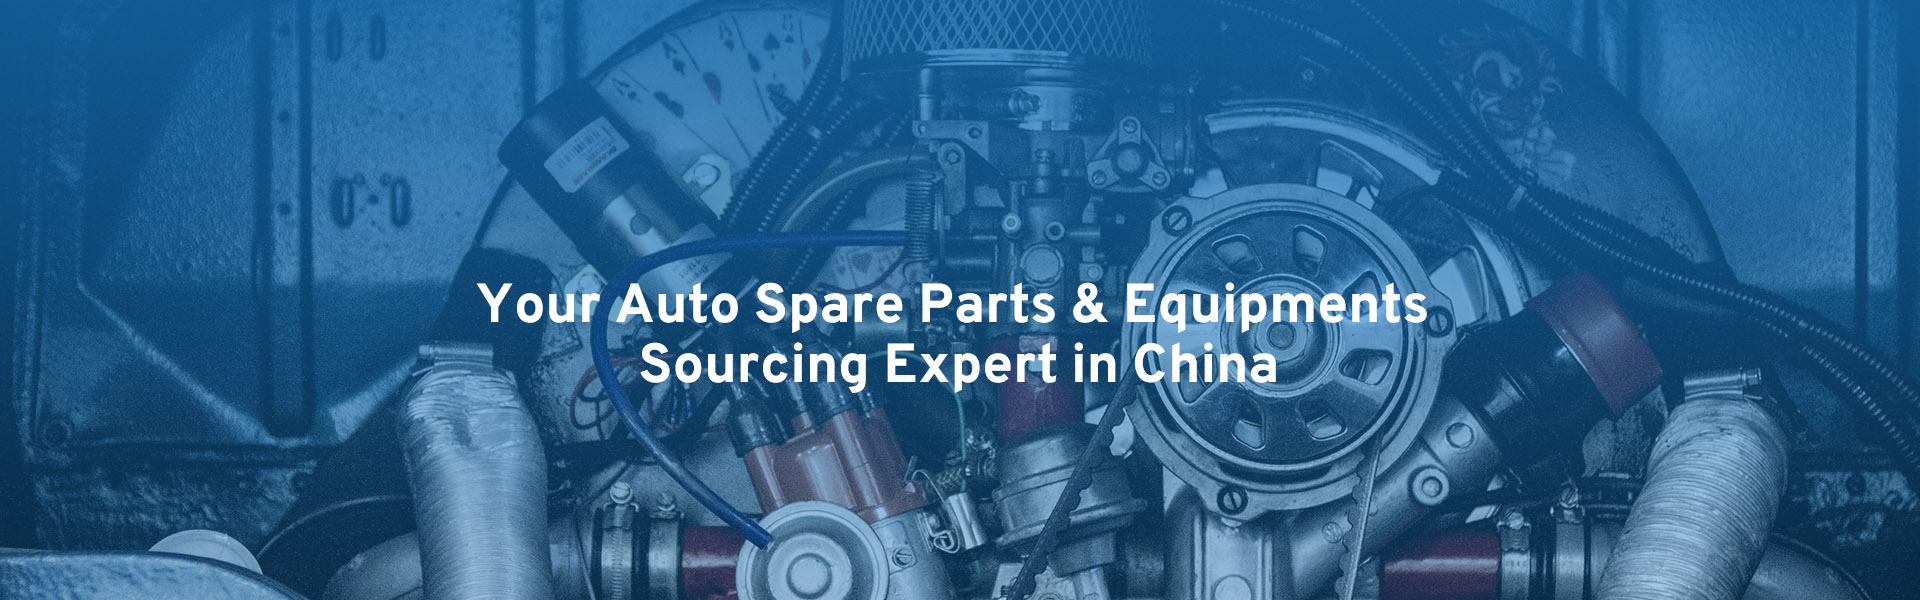 Your Auto Spare Parts & Equipments Sourcing Expert in China